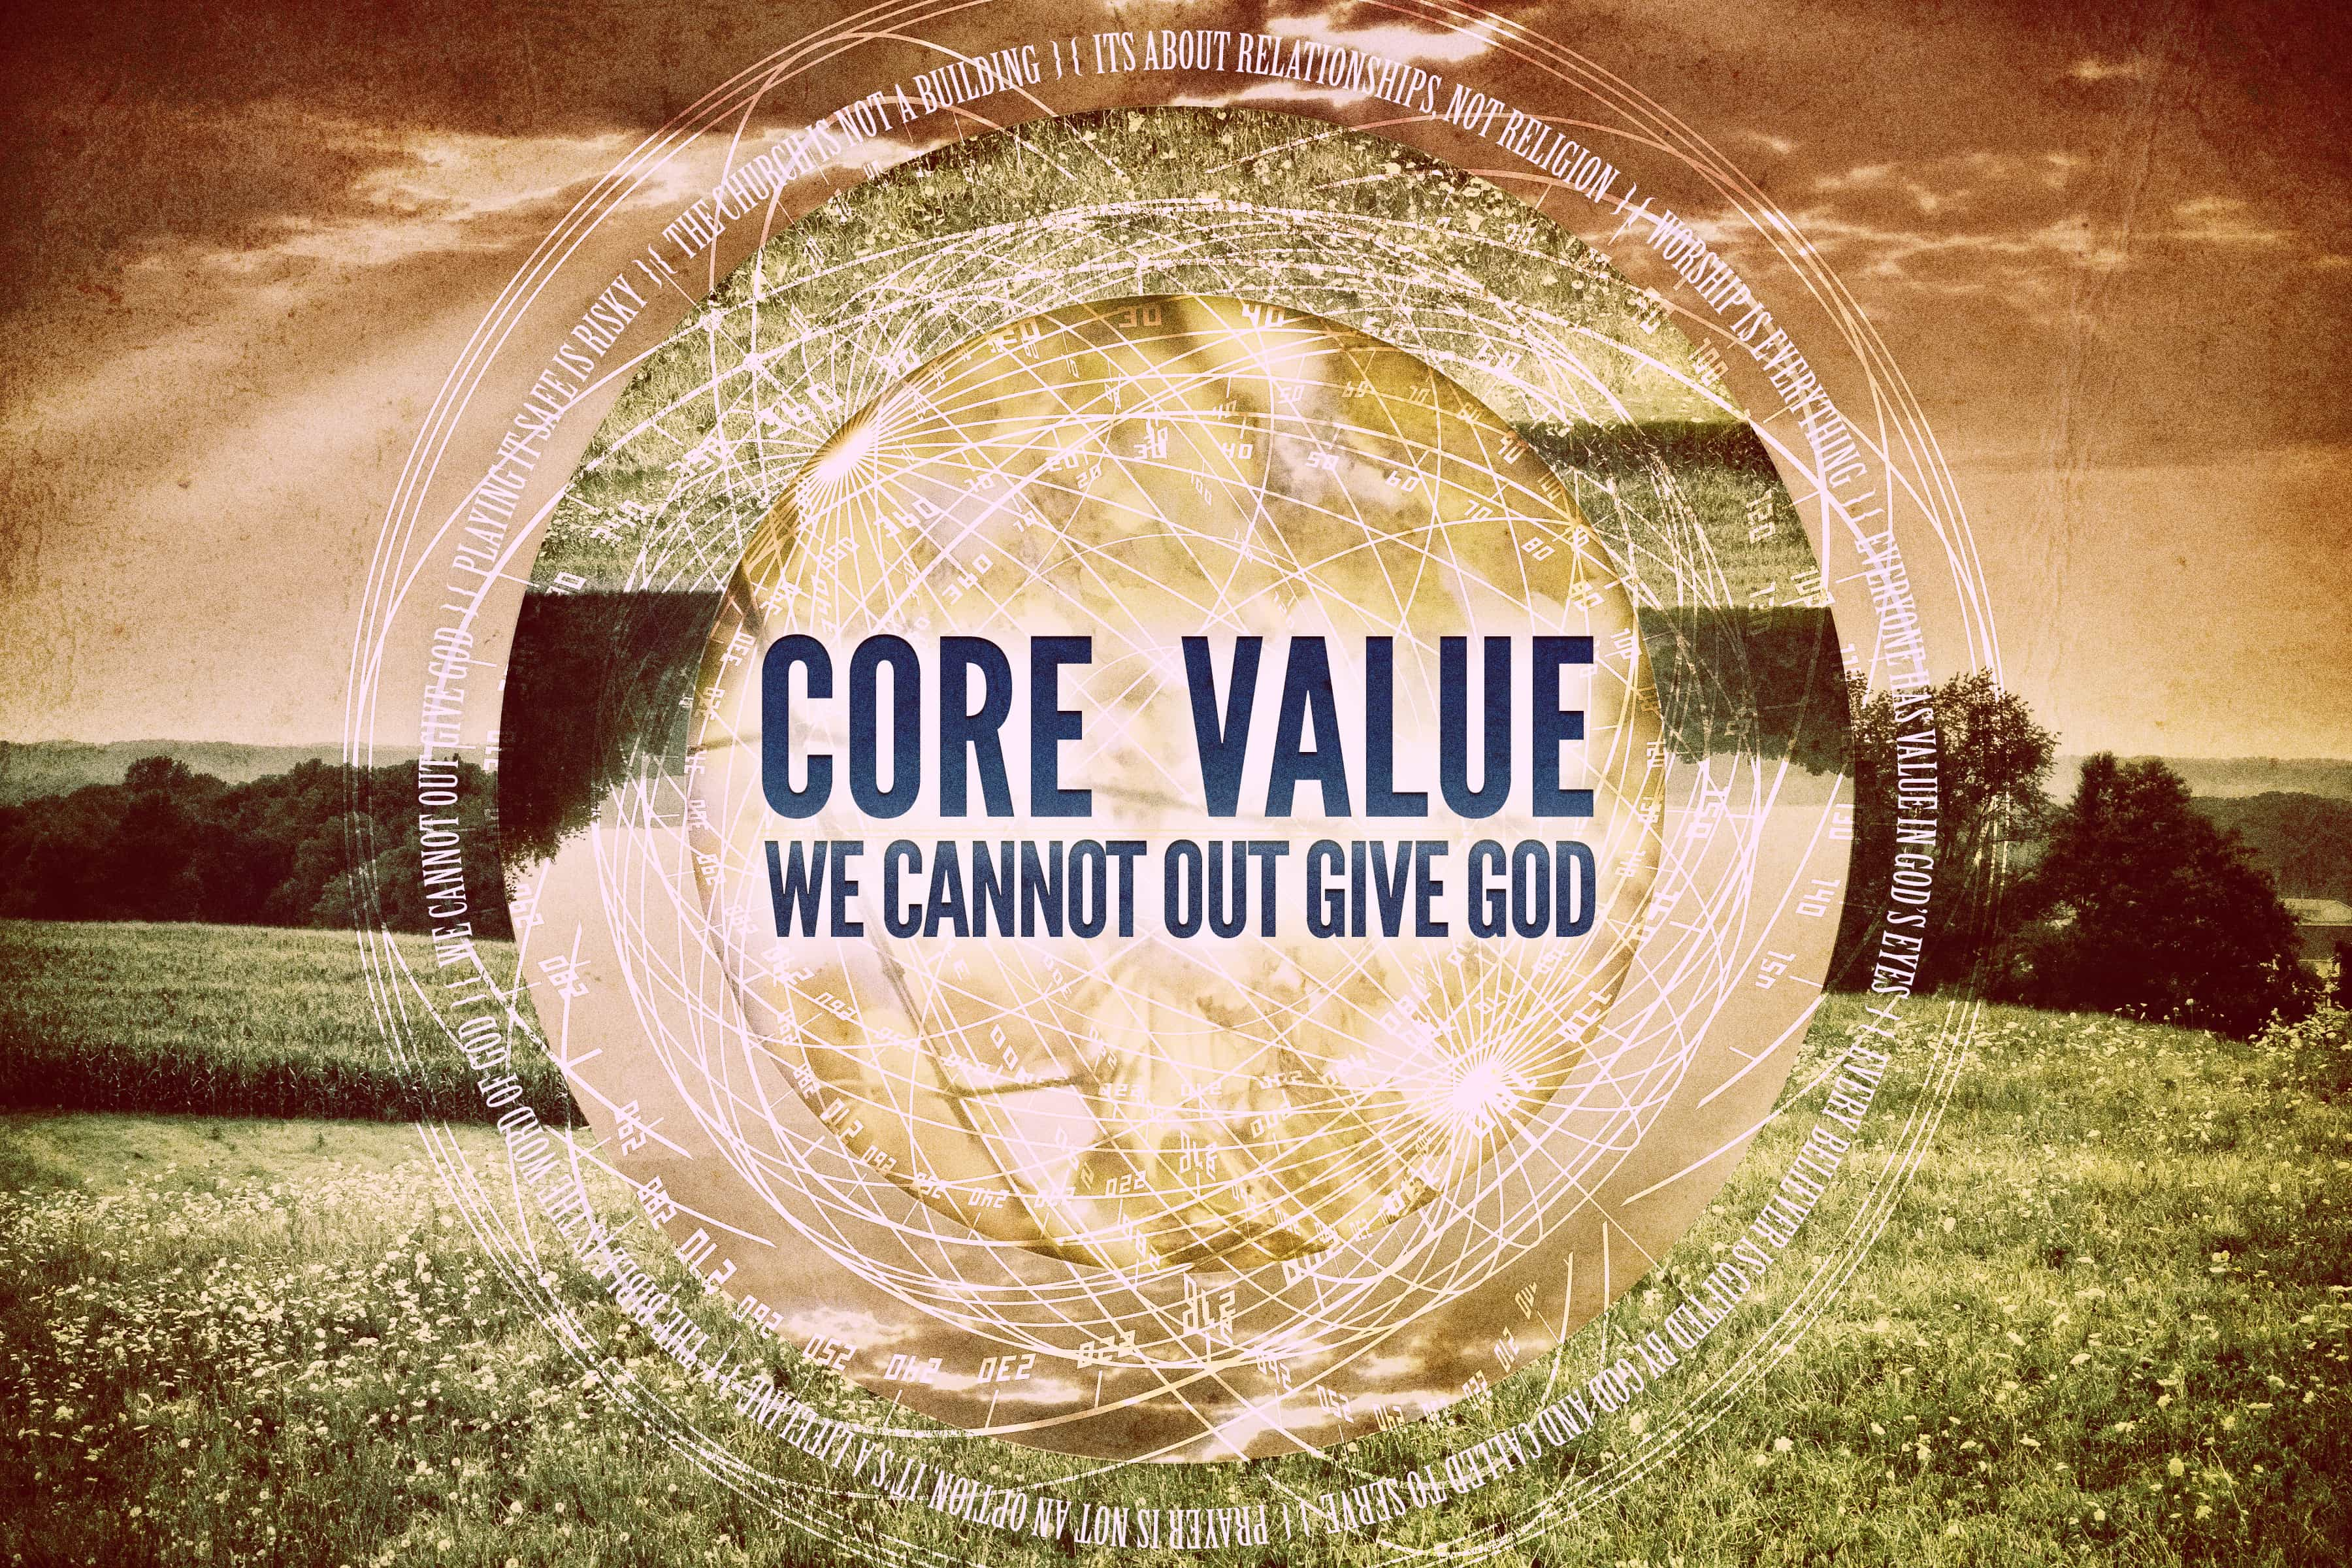 Core Value - We Cannot out Give God